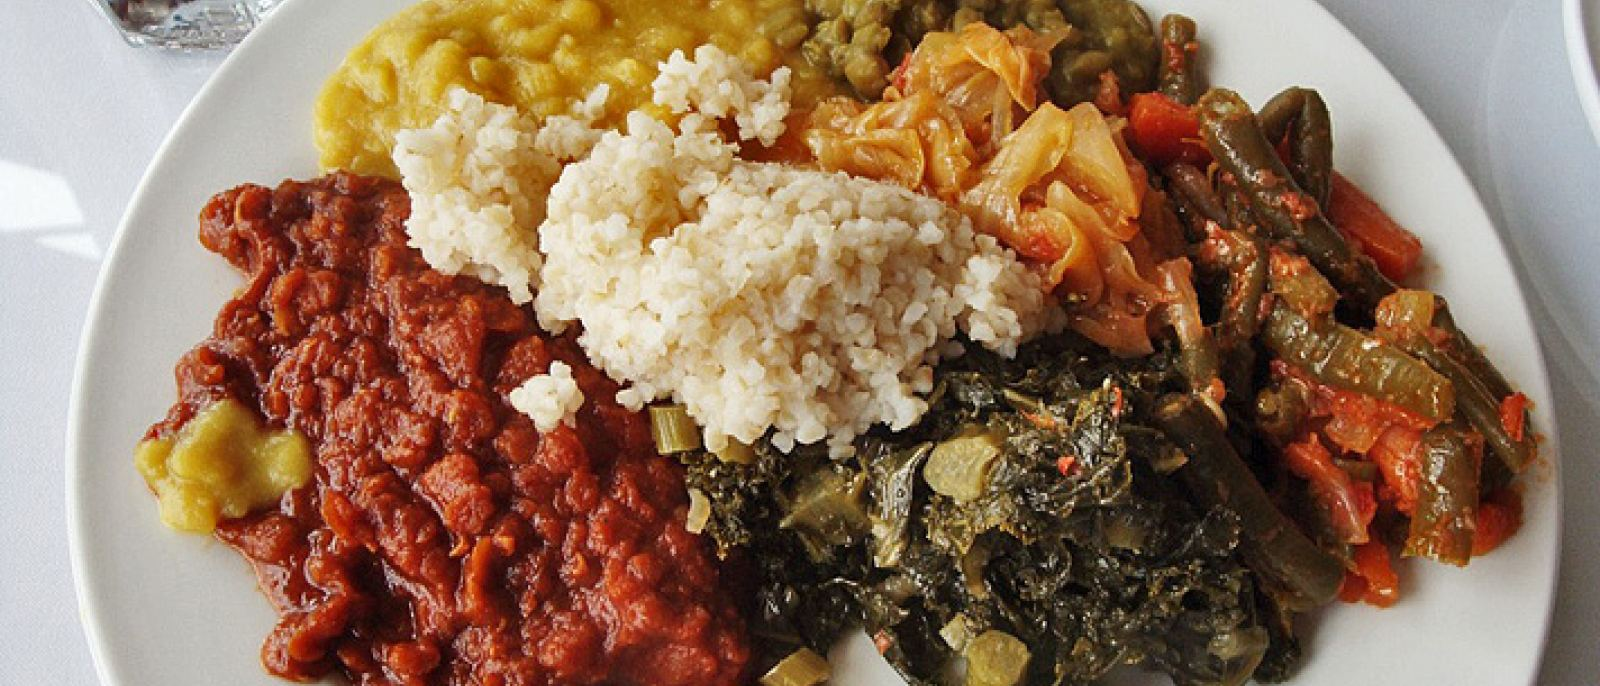 Lunch buffet at Rahel Ethiopian Vegan Cuisine | Photo: Zach Brooks